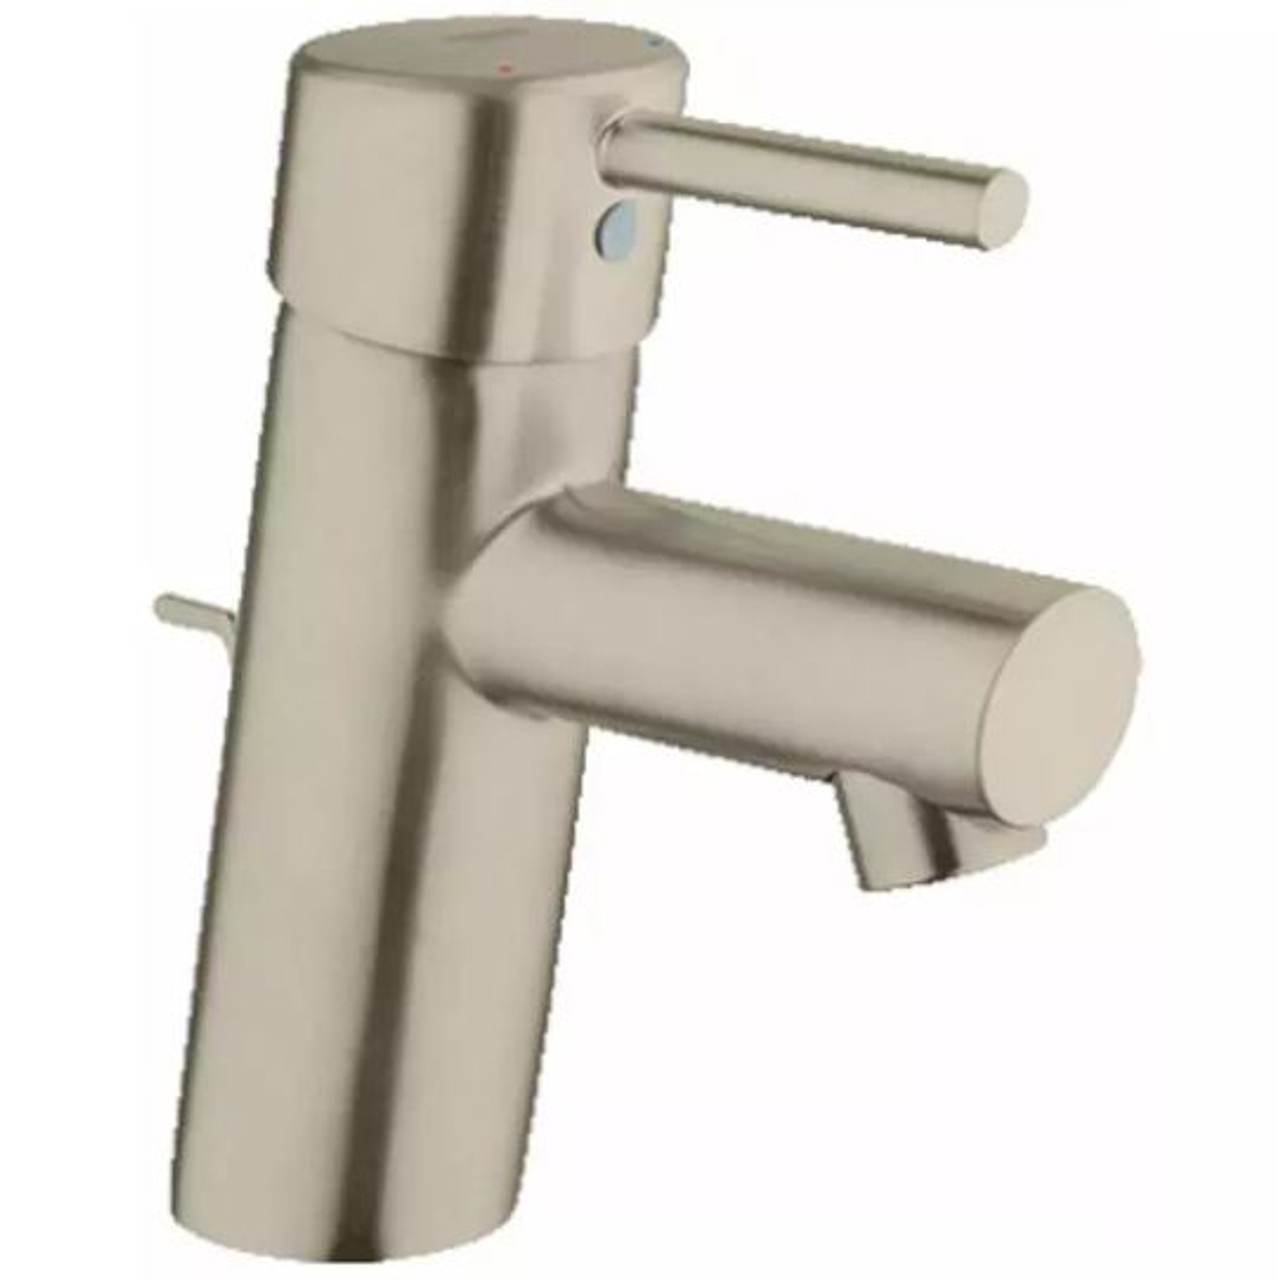 grohe concetto 1 2 gpm single handle single hole bathroom faucet with silkmove ceramic disc cartridge free metal drain assembly with purchase